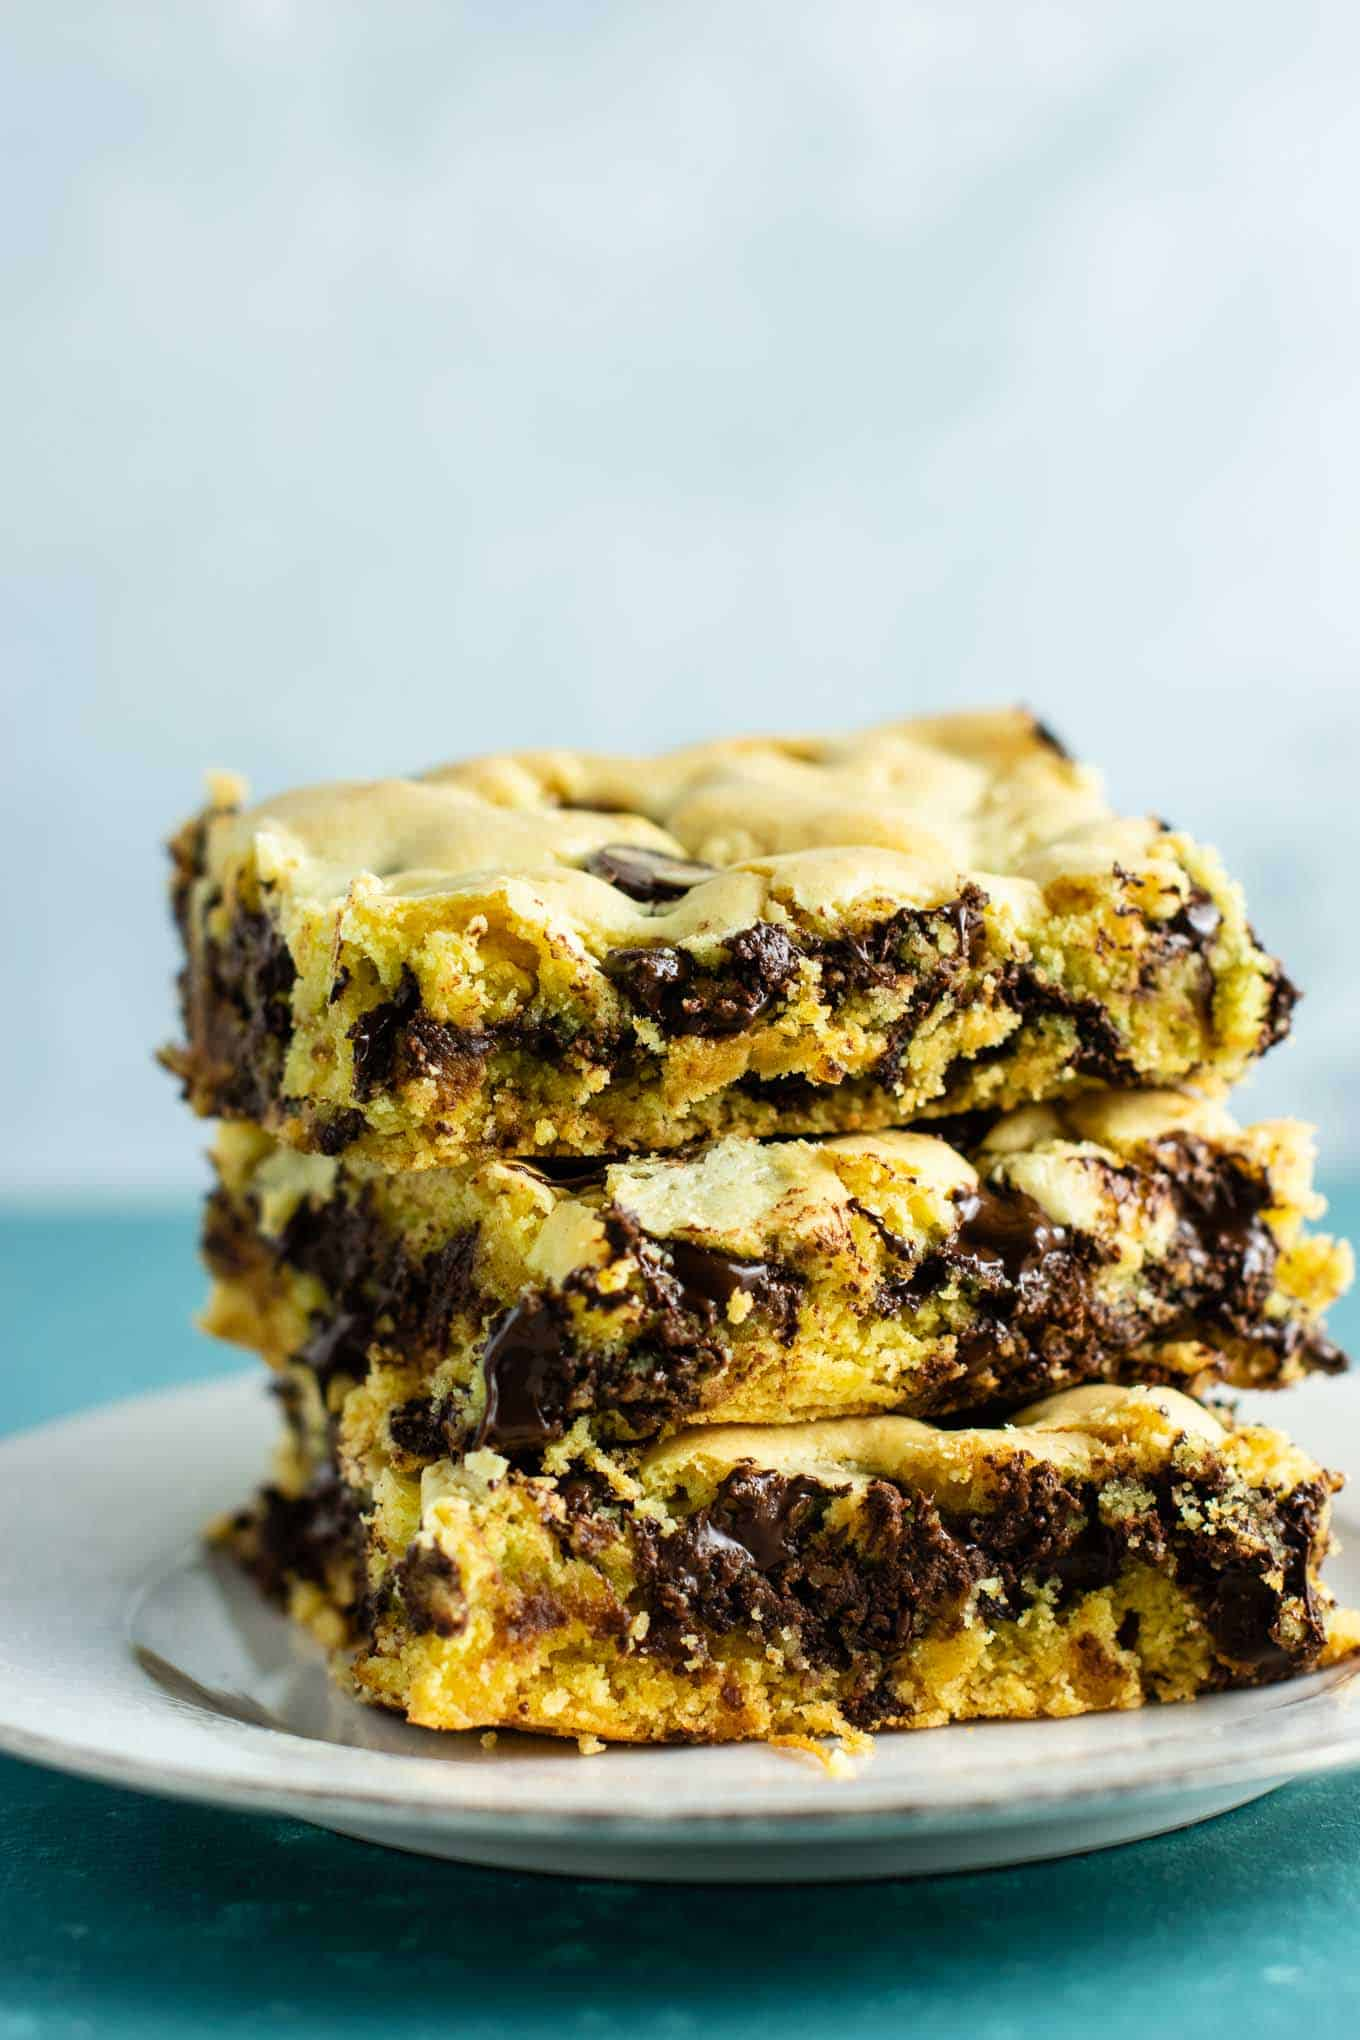 Cake mix cookie bars – make chocolate chip cookie bars with cake mix, chocolate chips, olive oil, and eggs! I always make these when I need a fast easy dessert! #dessert #cakemix #cakemixcookiebars #cookiebars #dessertrecipe #easydessert #easyrecipe